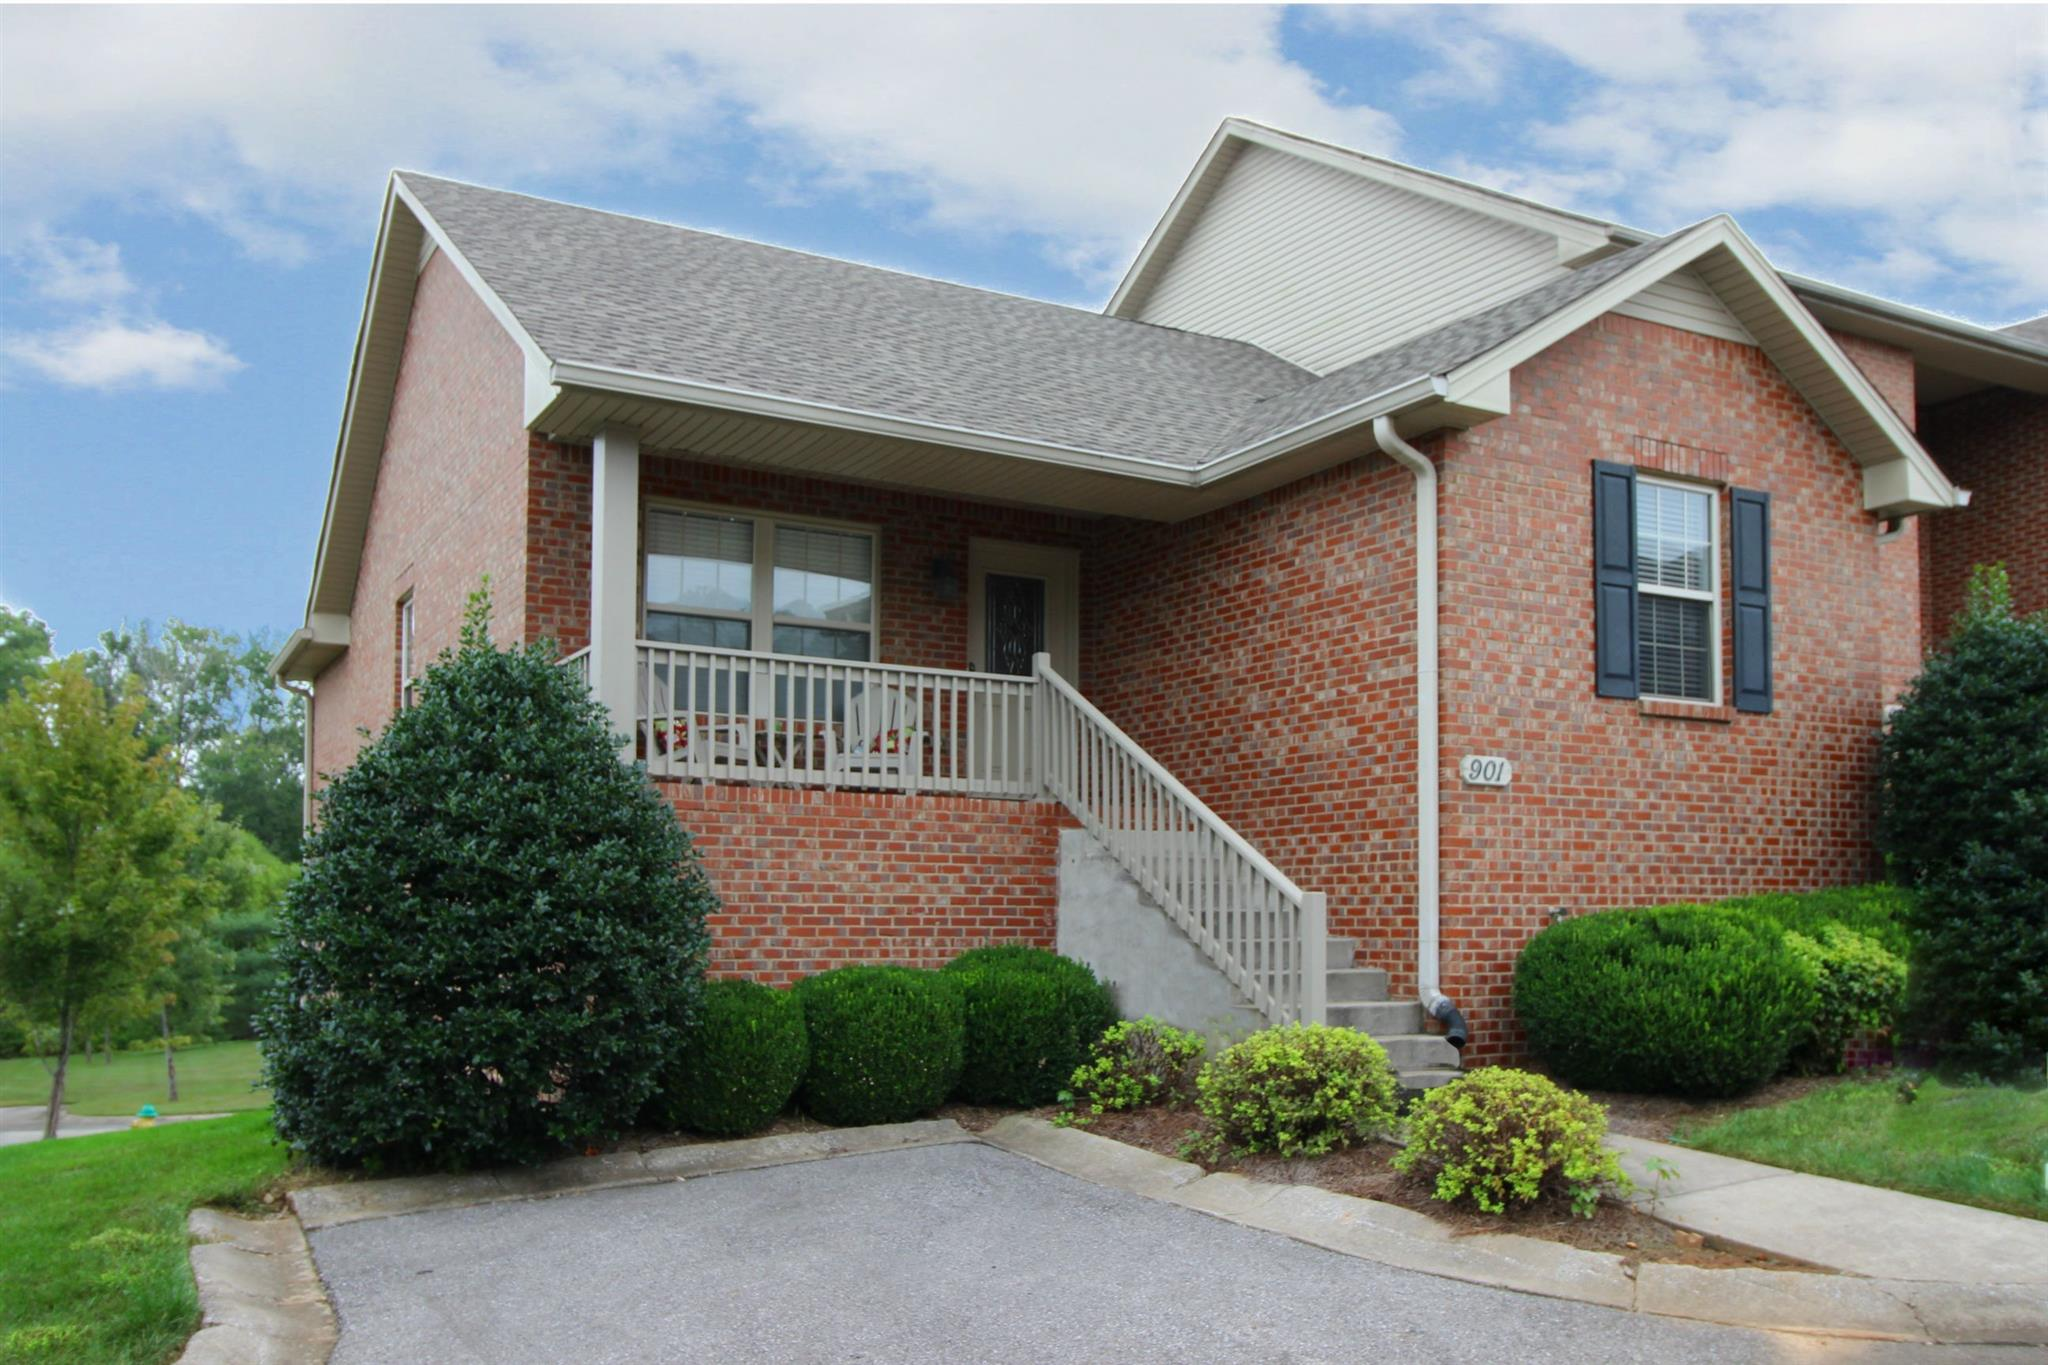 135 Excell Rd # 901, Clarksville, TN 37043